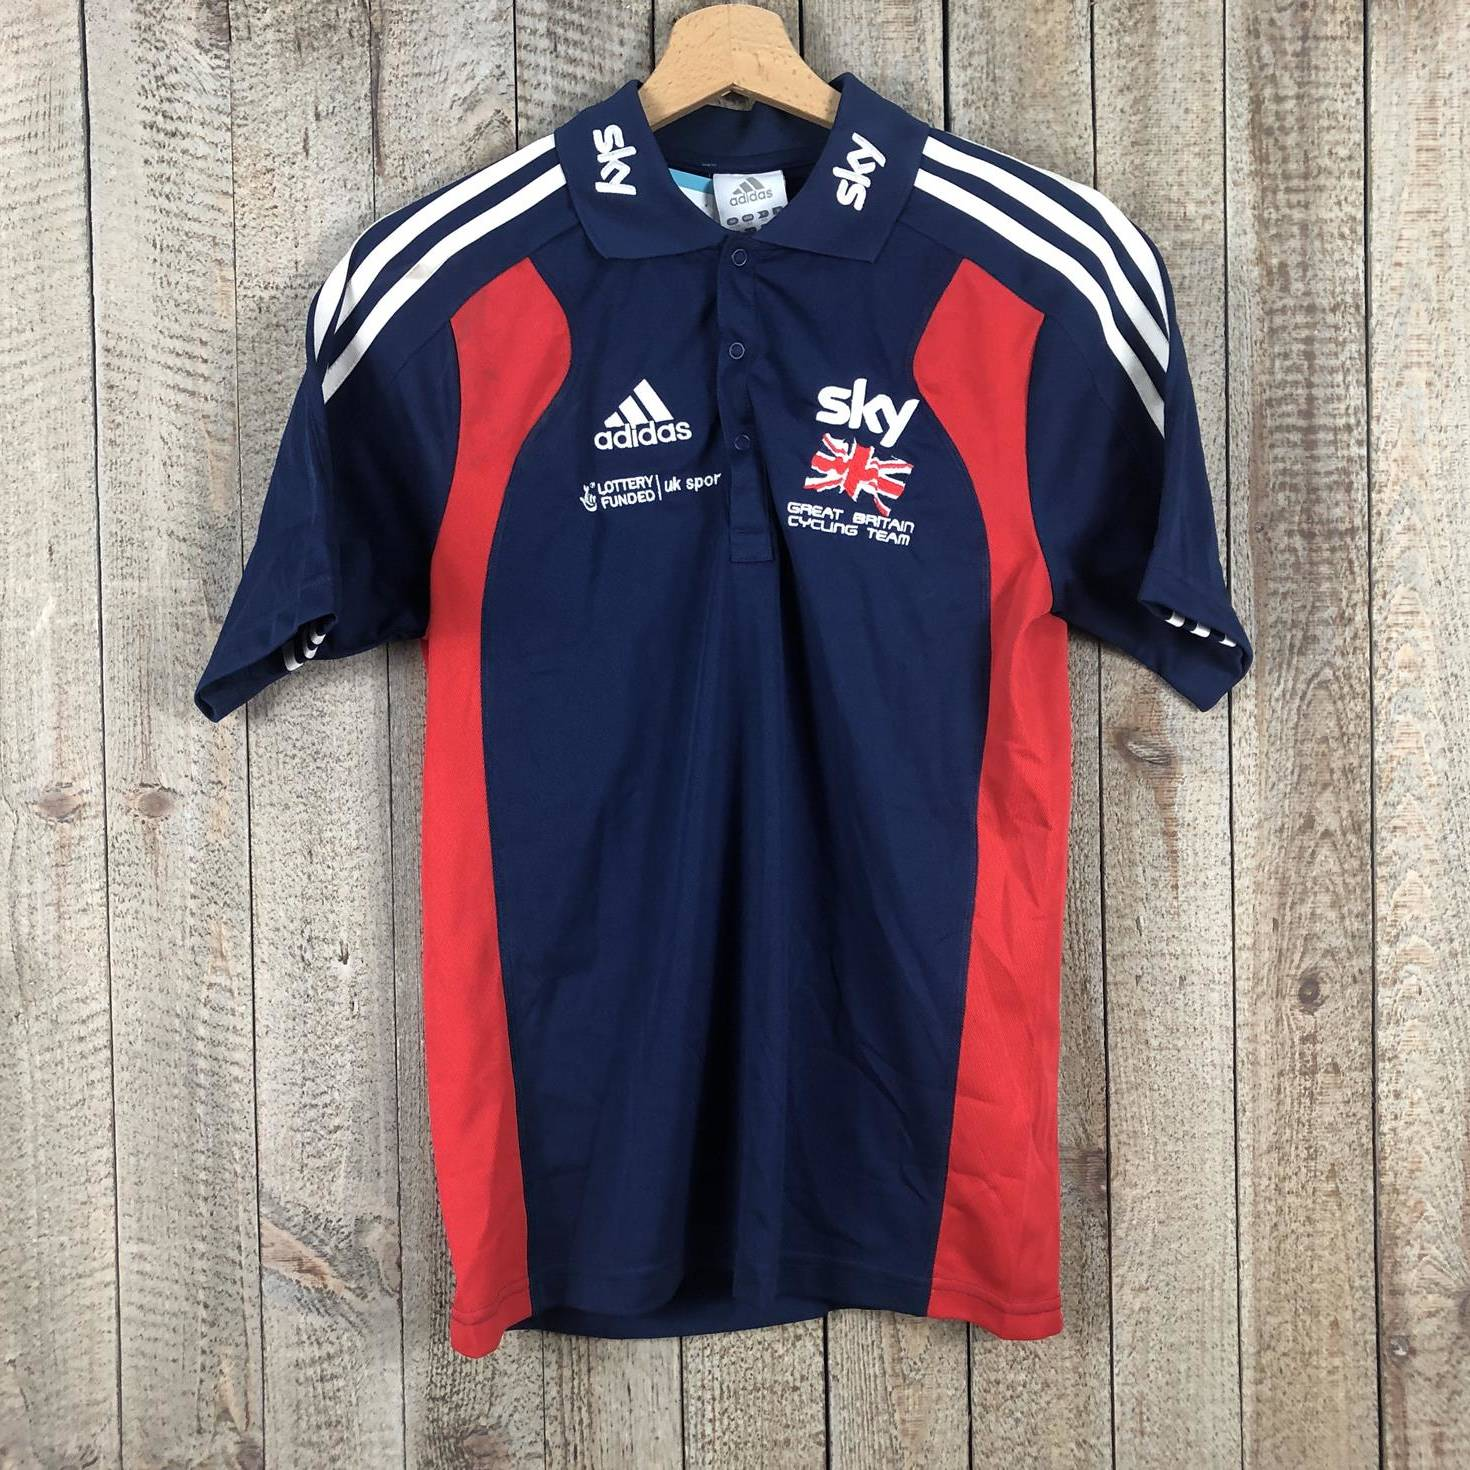 Polo Shirt - British Cycling 00003489 (1)